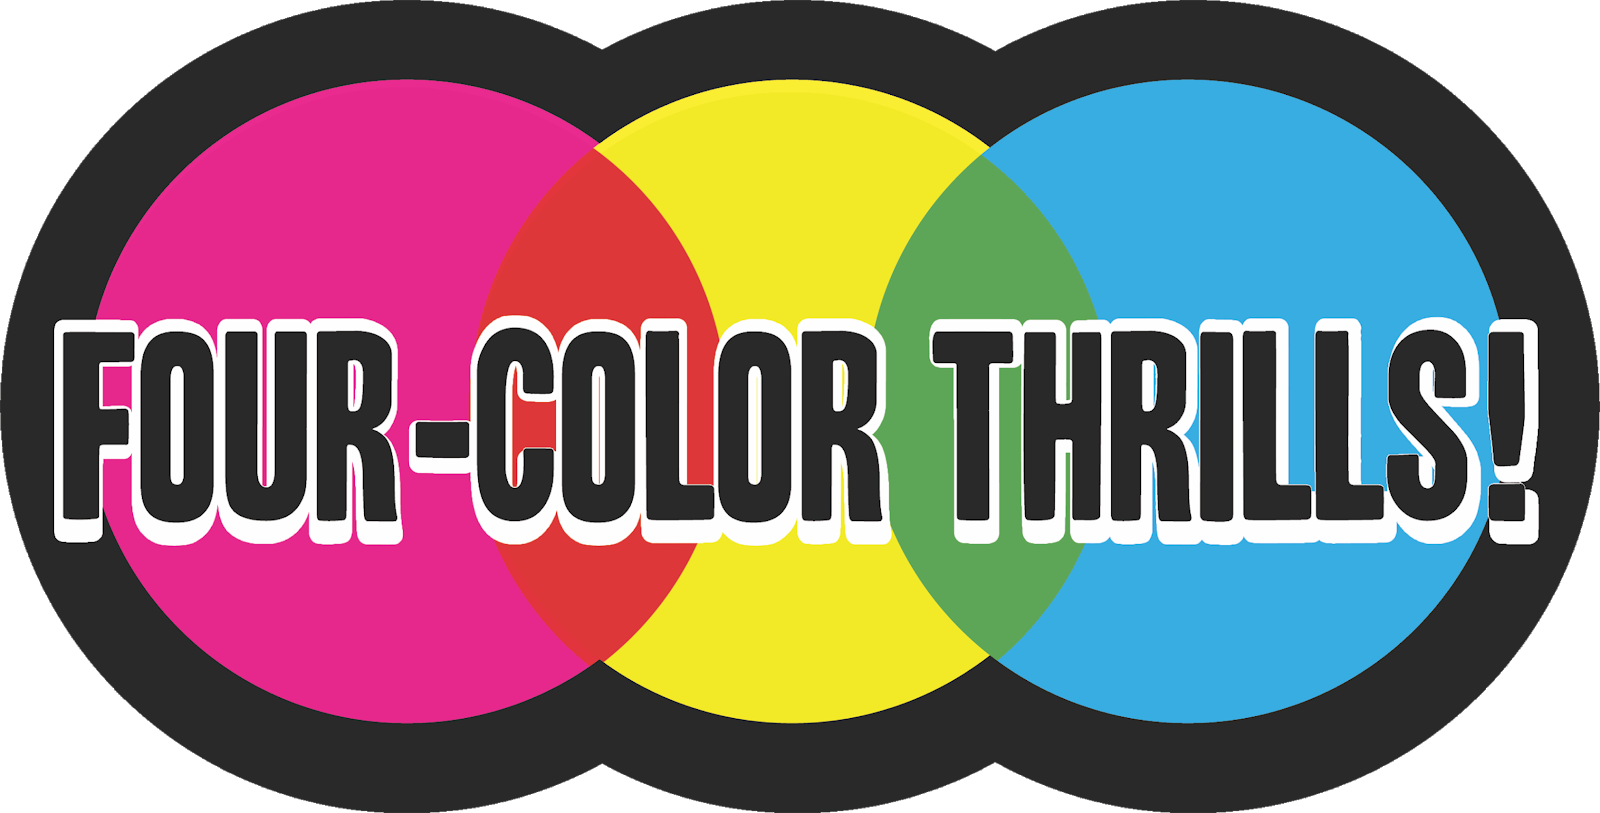 Four Color Thrills